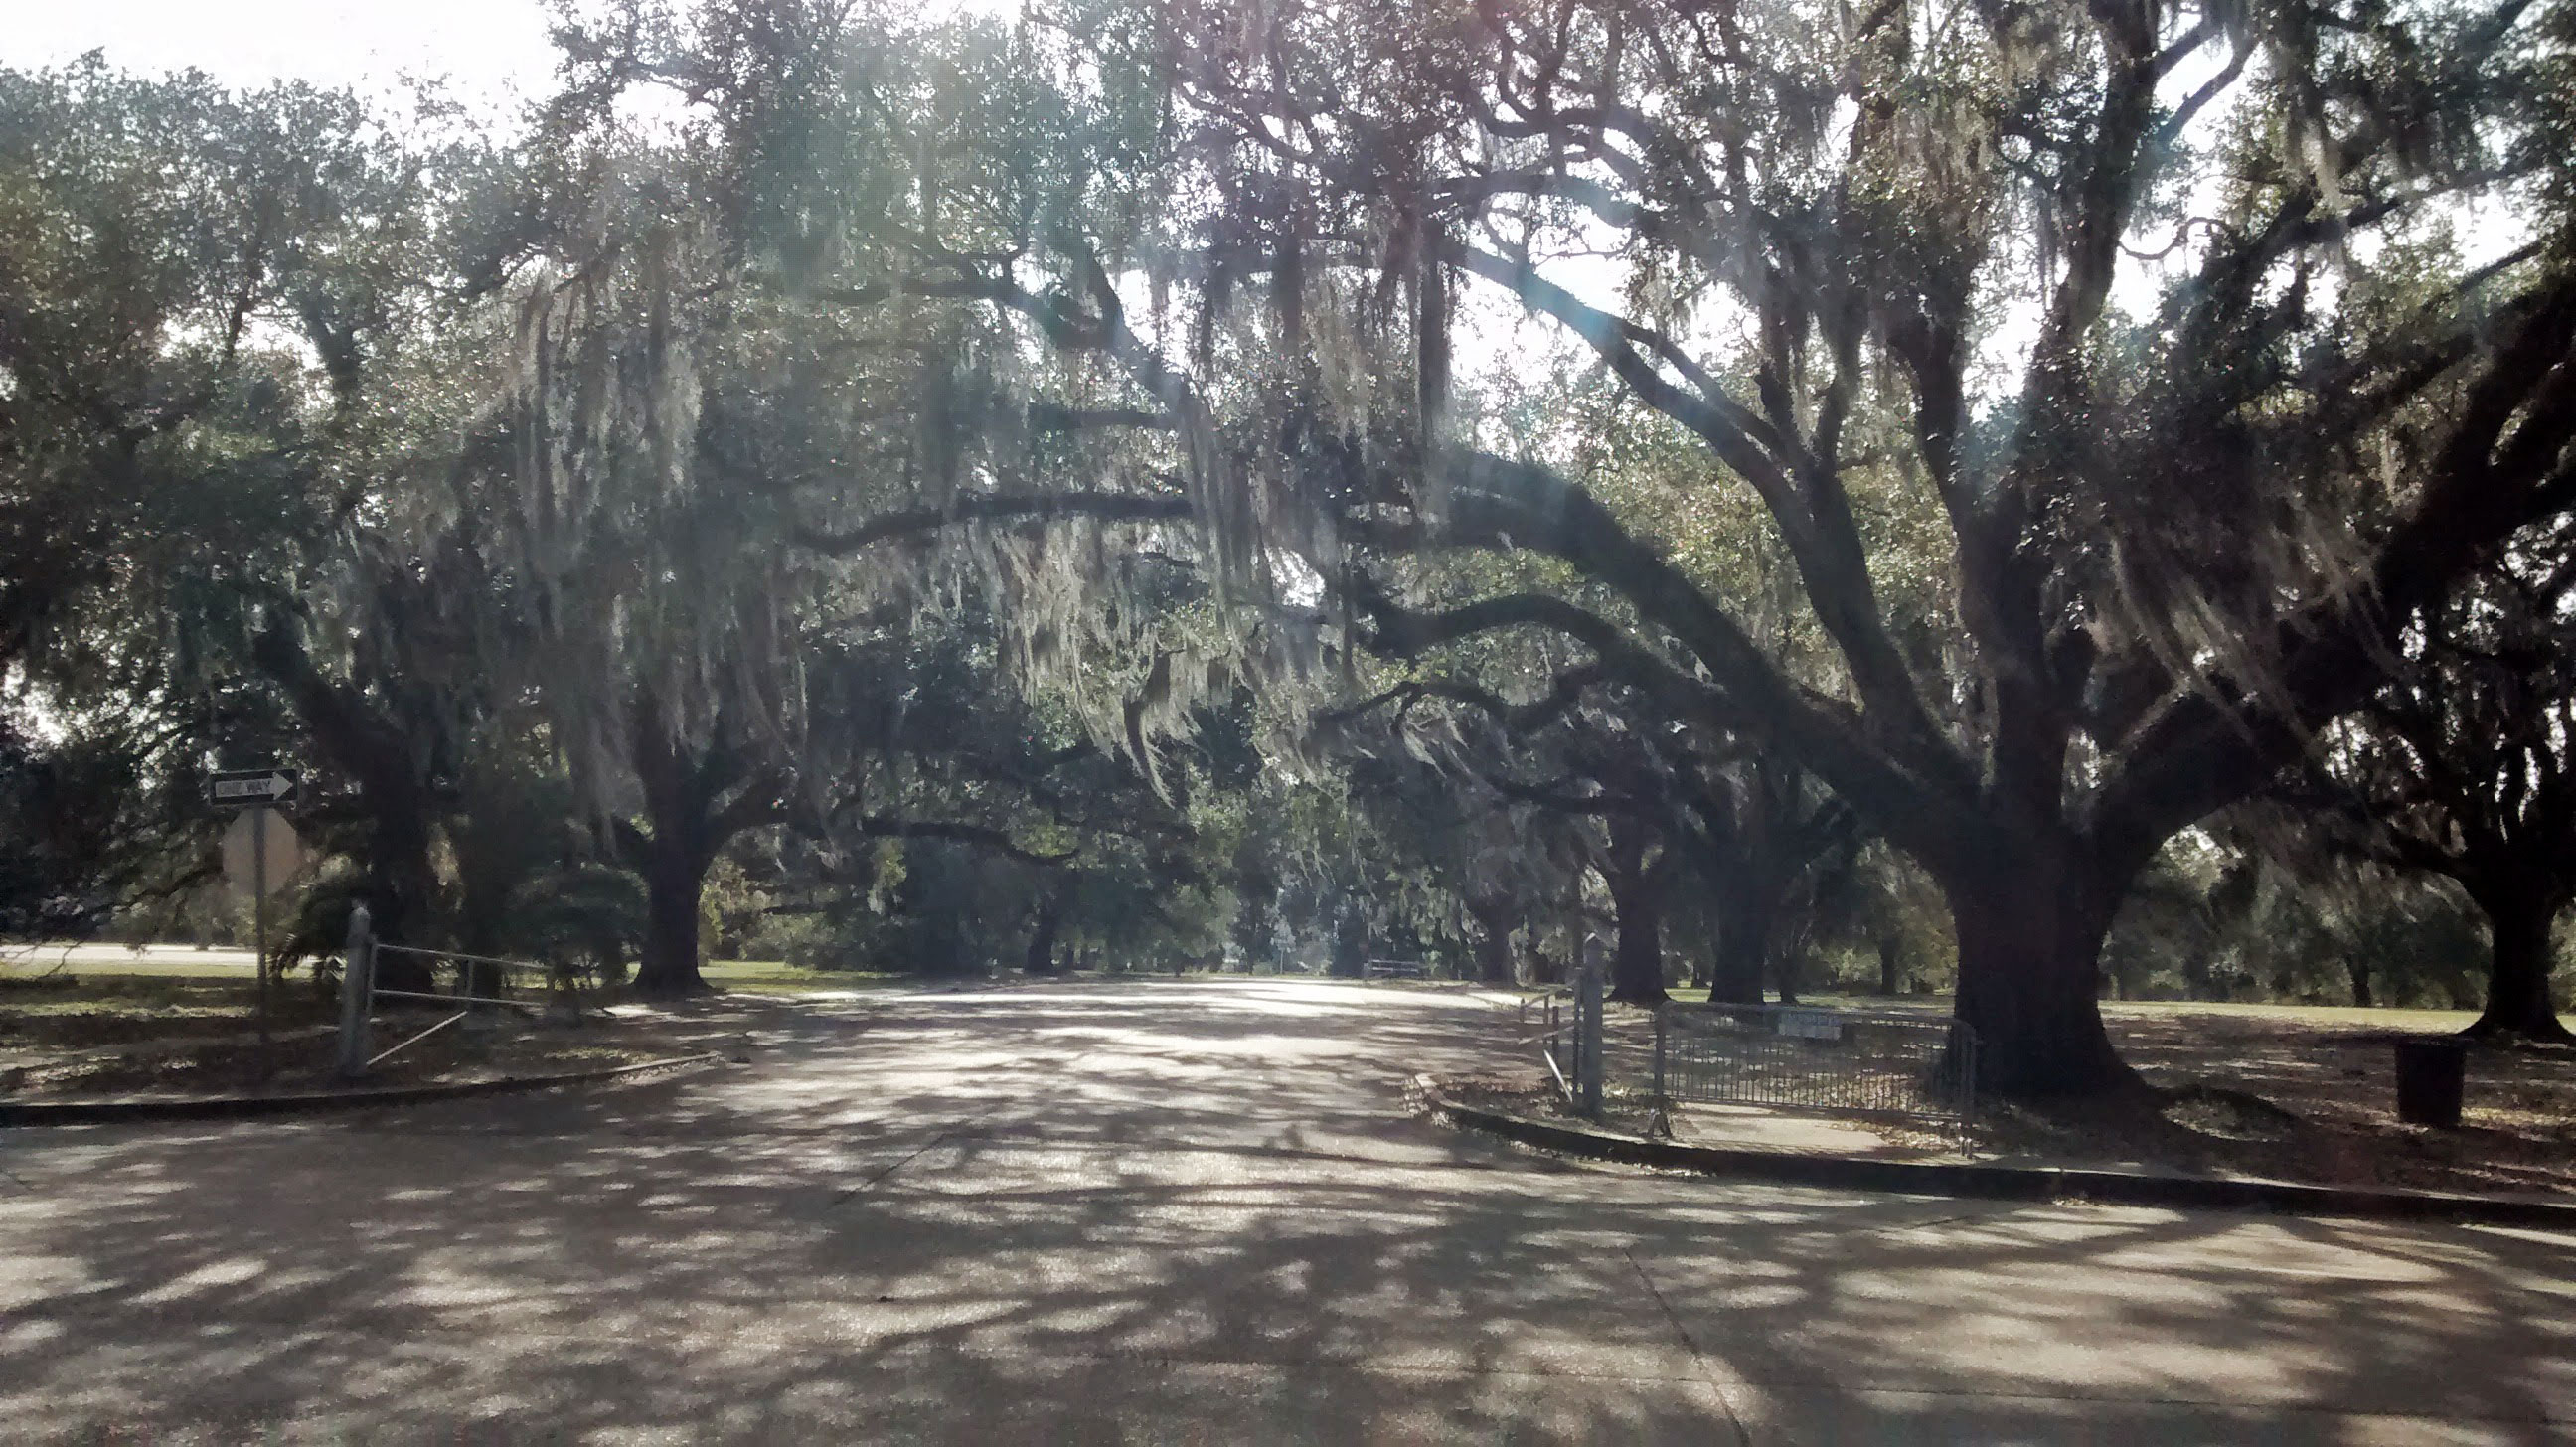 CityPark 1024x575 - Visiting New Orleans In January: Top 8 Things To Do